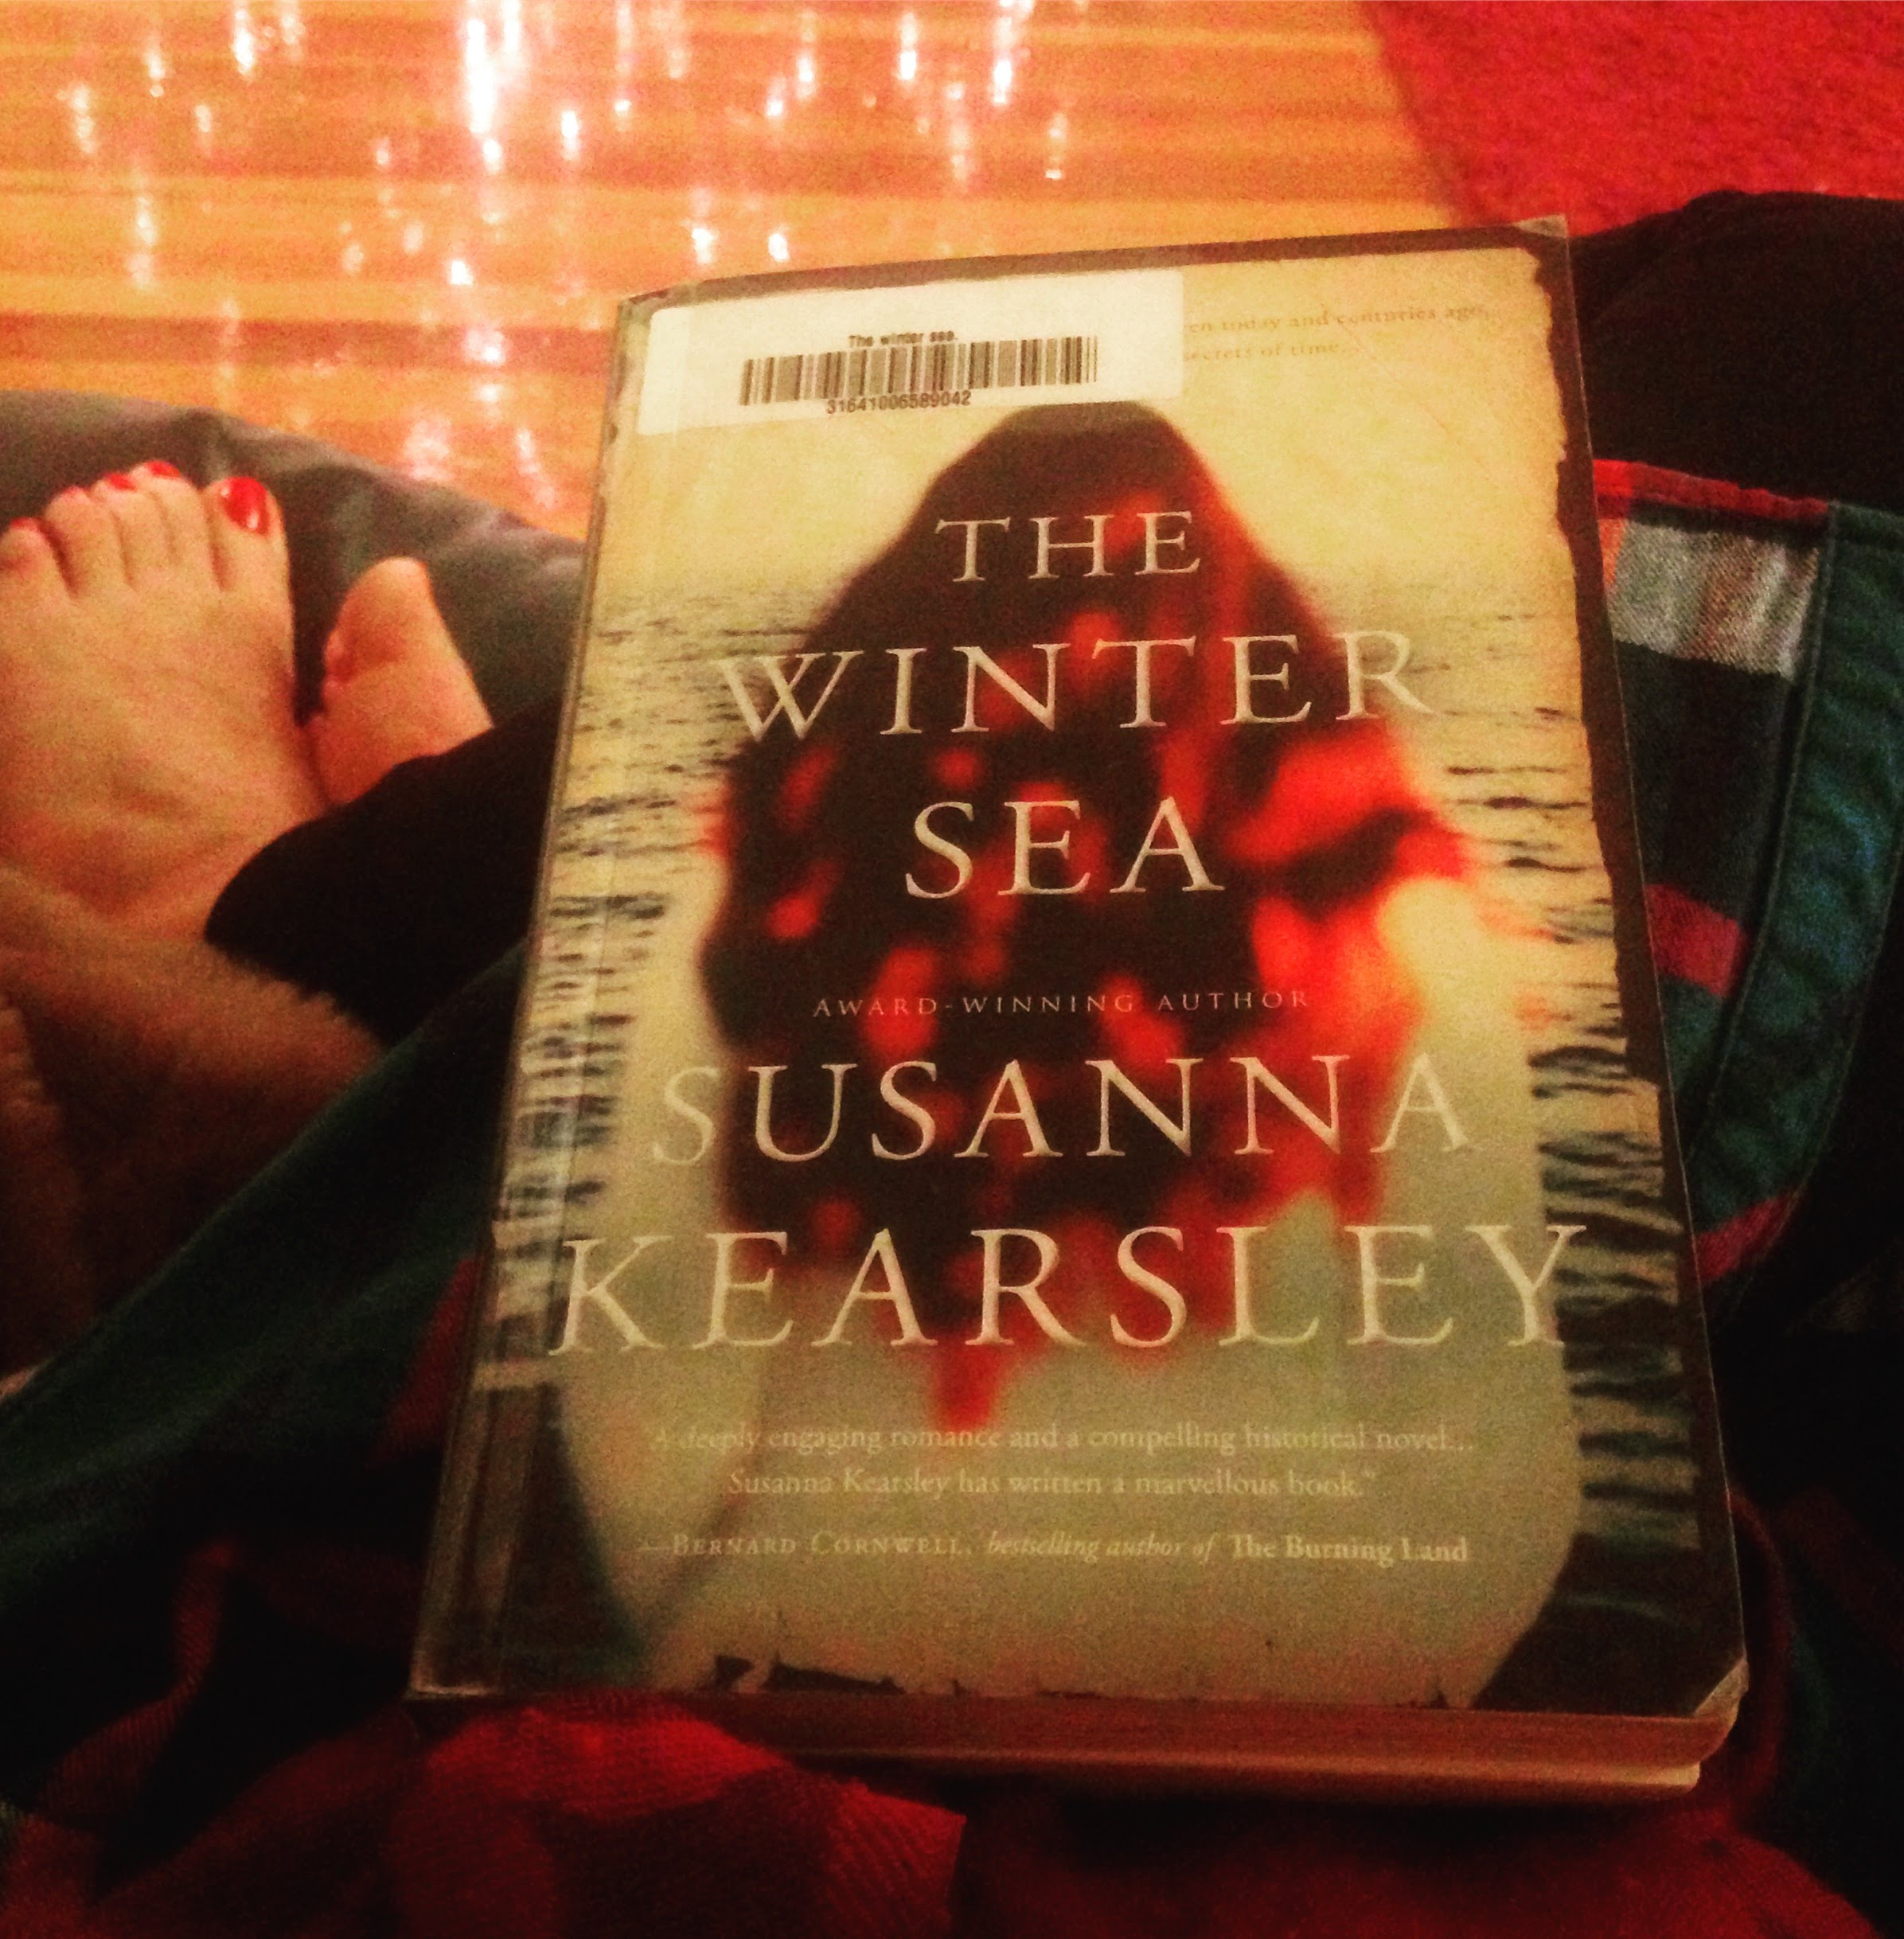 the winter sea book cover lights bare feet